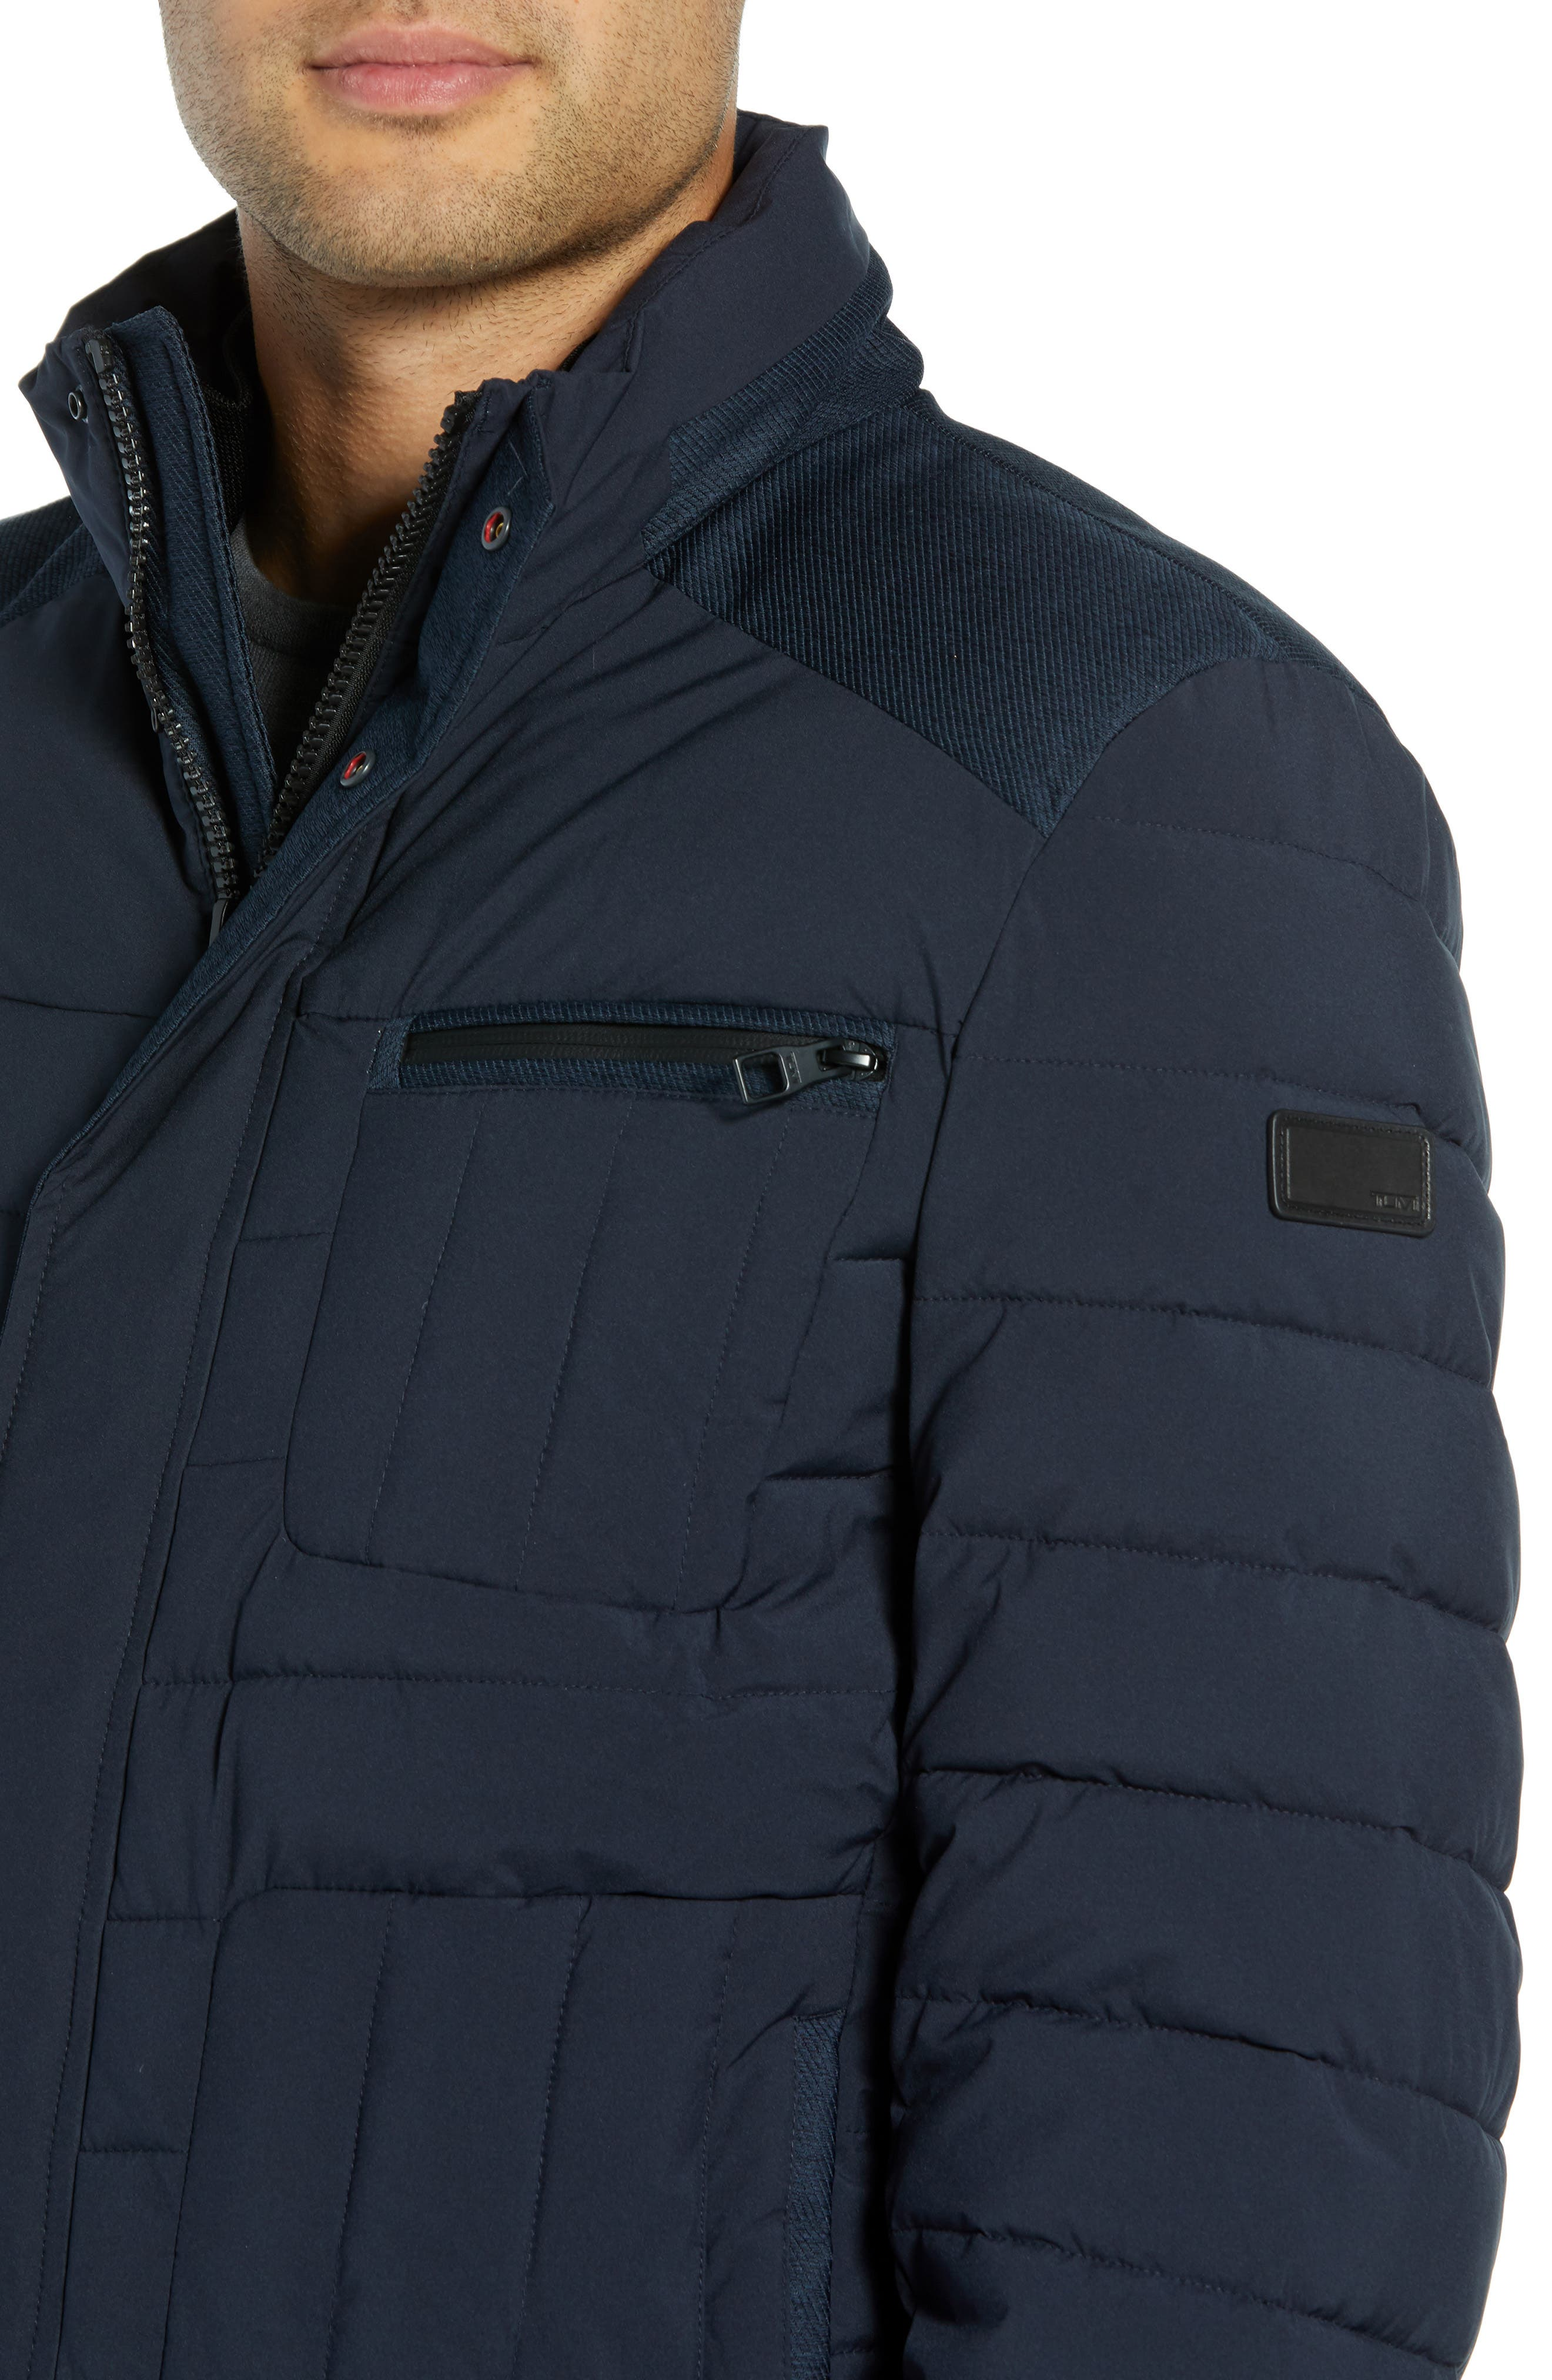 Heritage Quilted Jacket,                             Alternate thumbnail 4, color,                             410